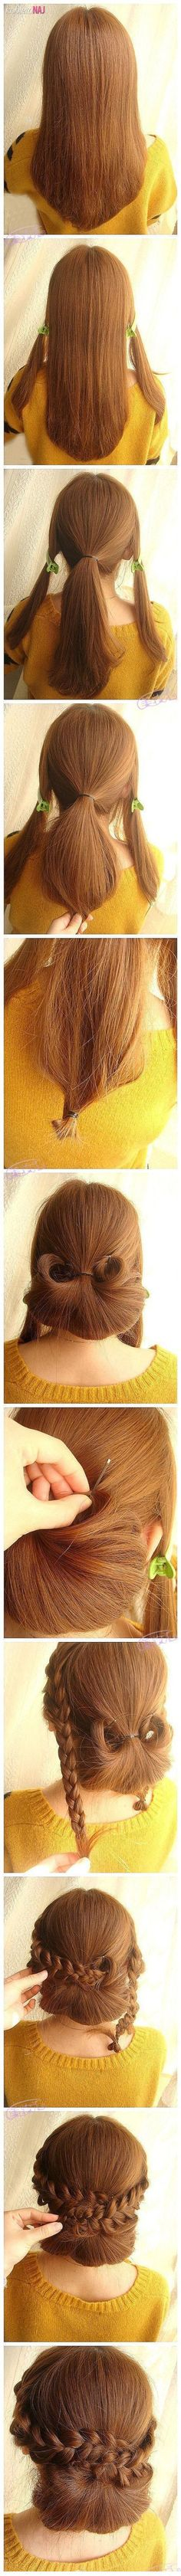 best hair images on pinterest hair makeup tuto coiffure and